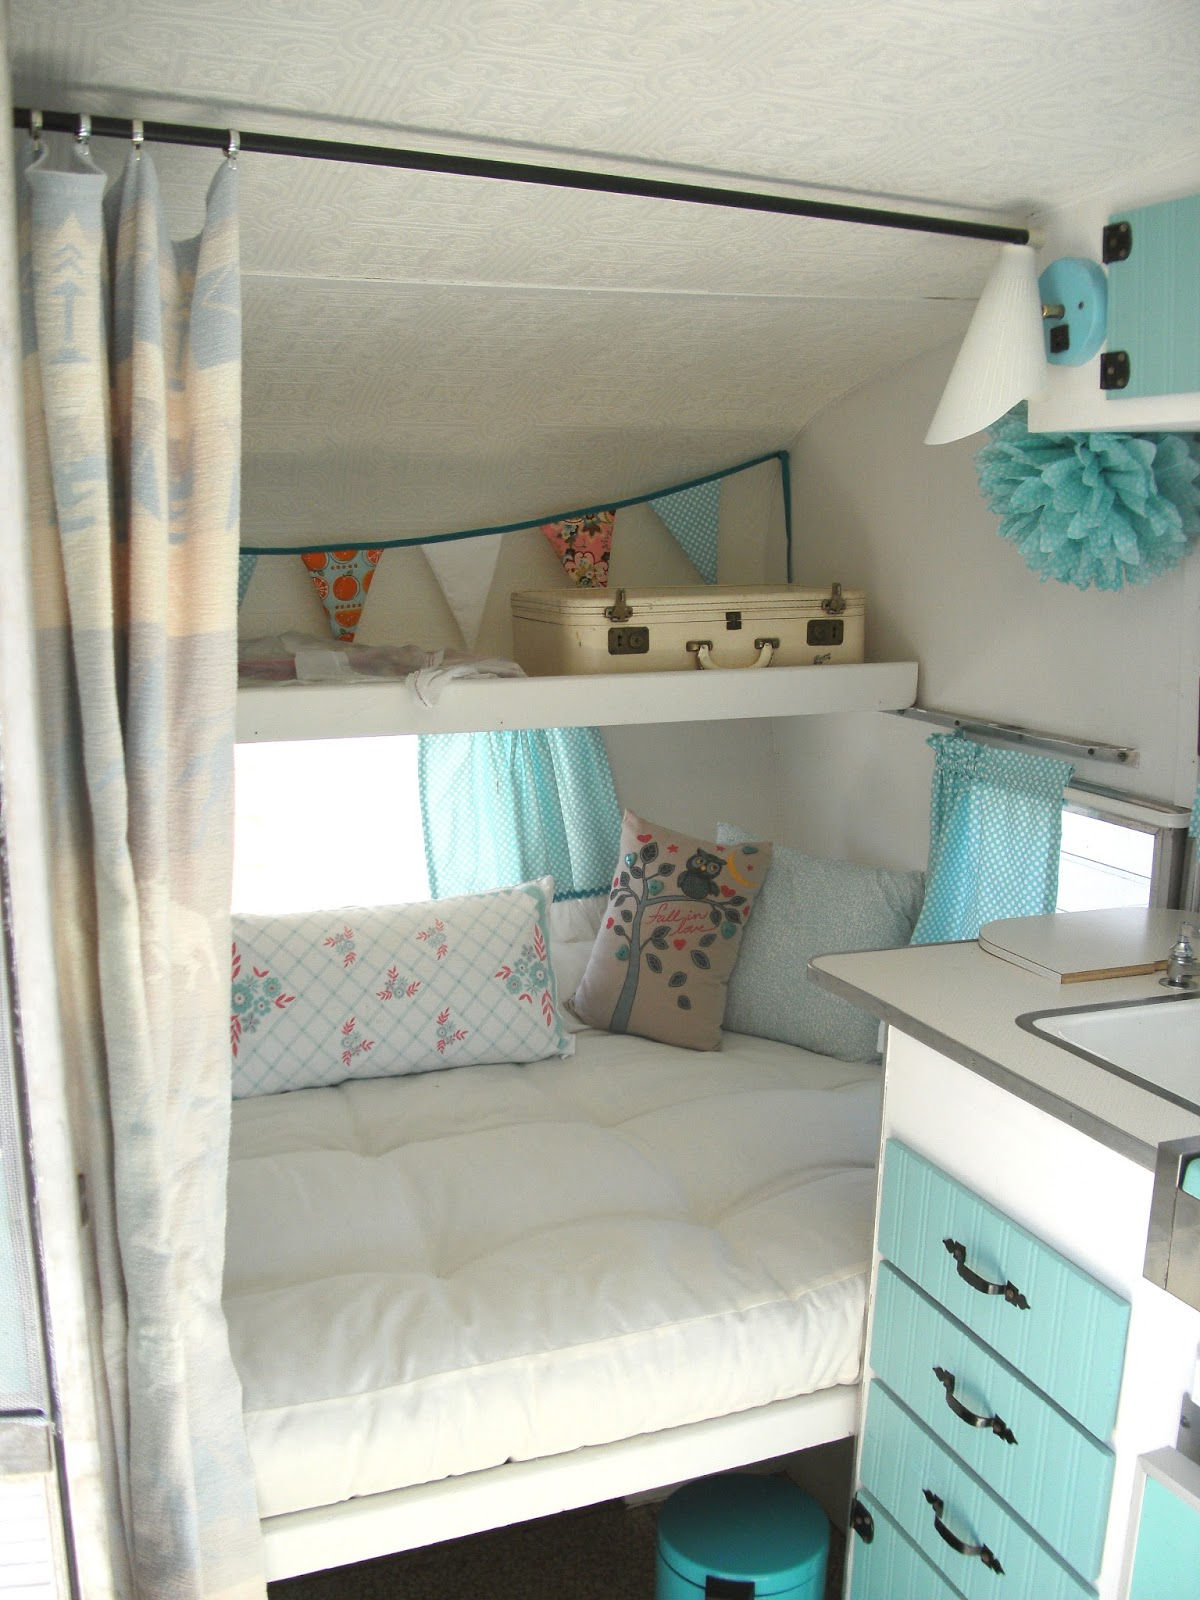 An update on maizy my little vintage trailer interior Small cottage renovation ideas